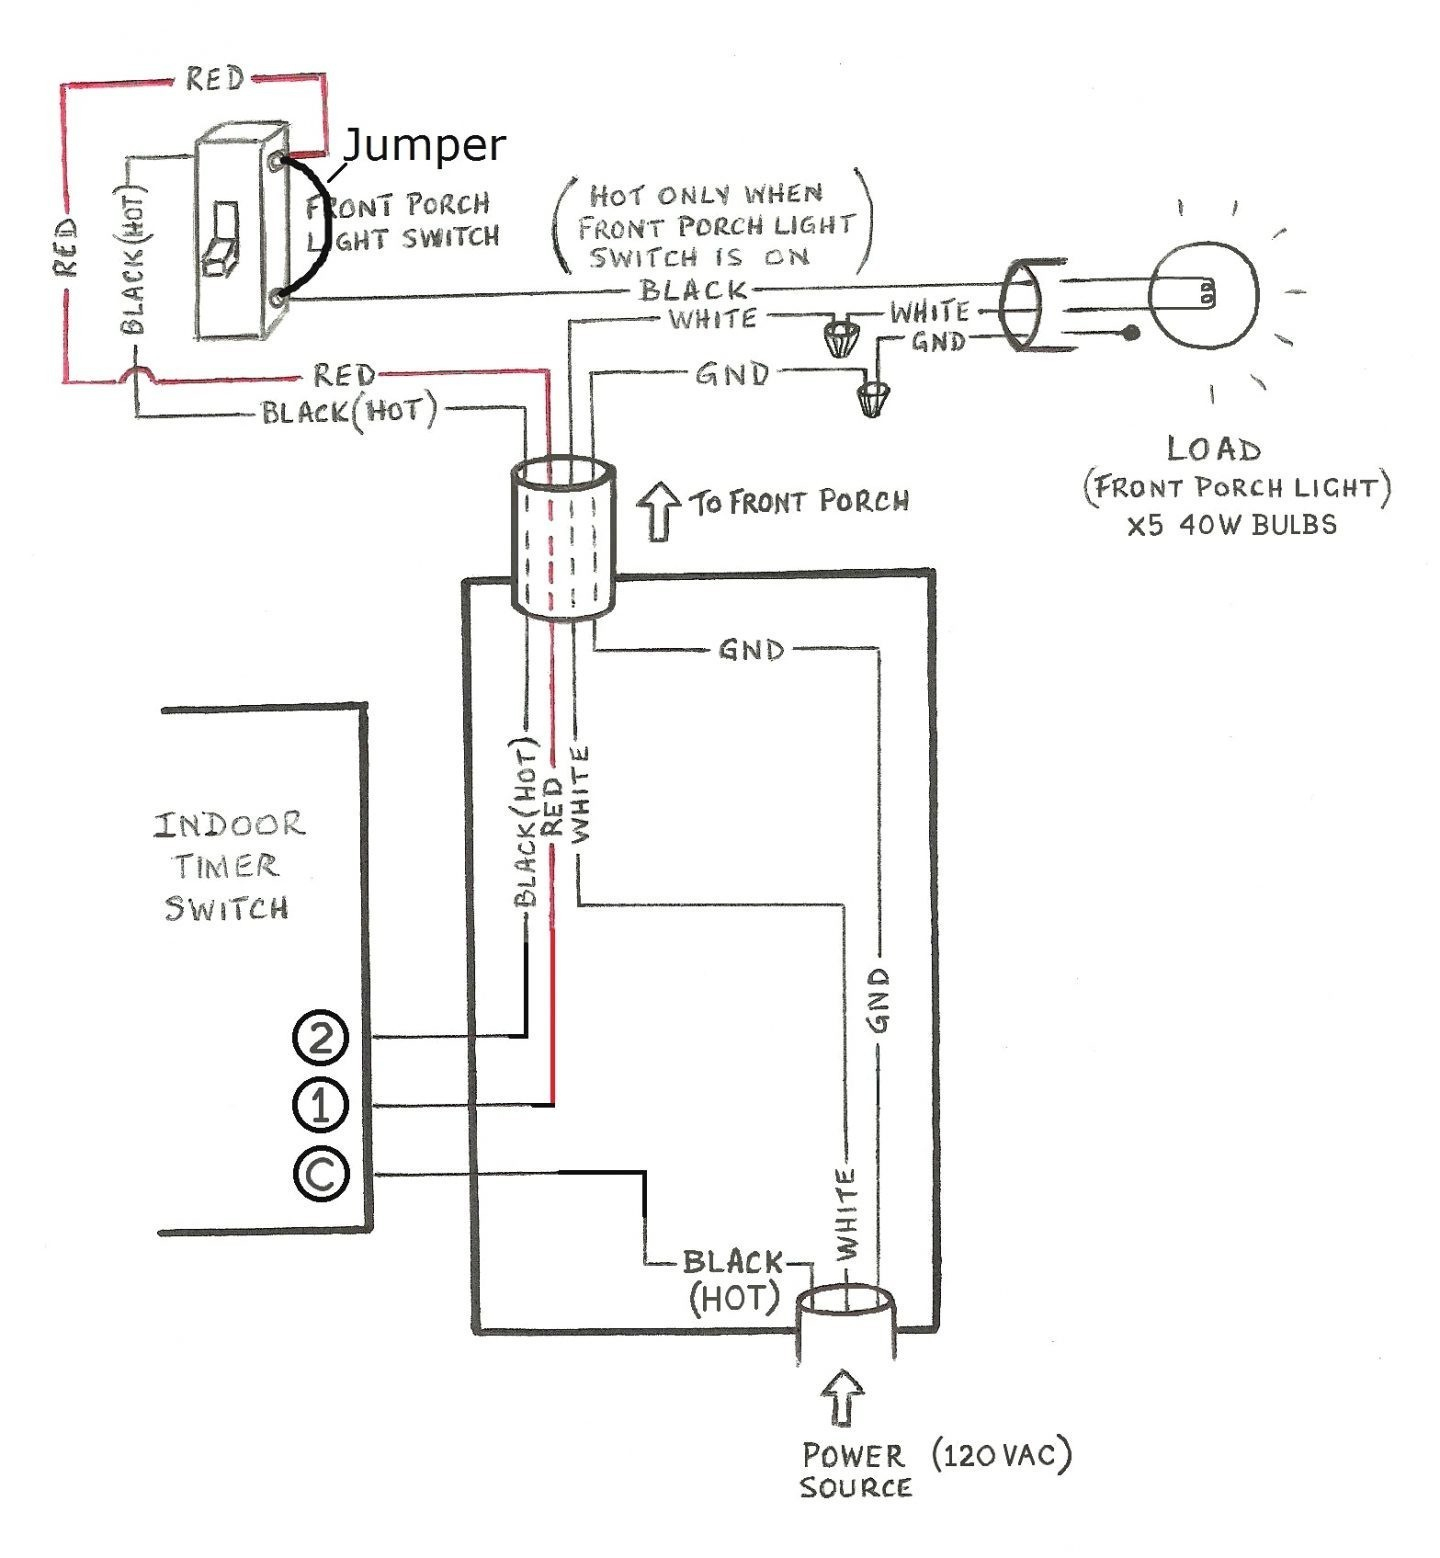 Honeywell Aquastat L8148e Wiring Diagram